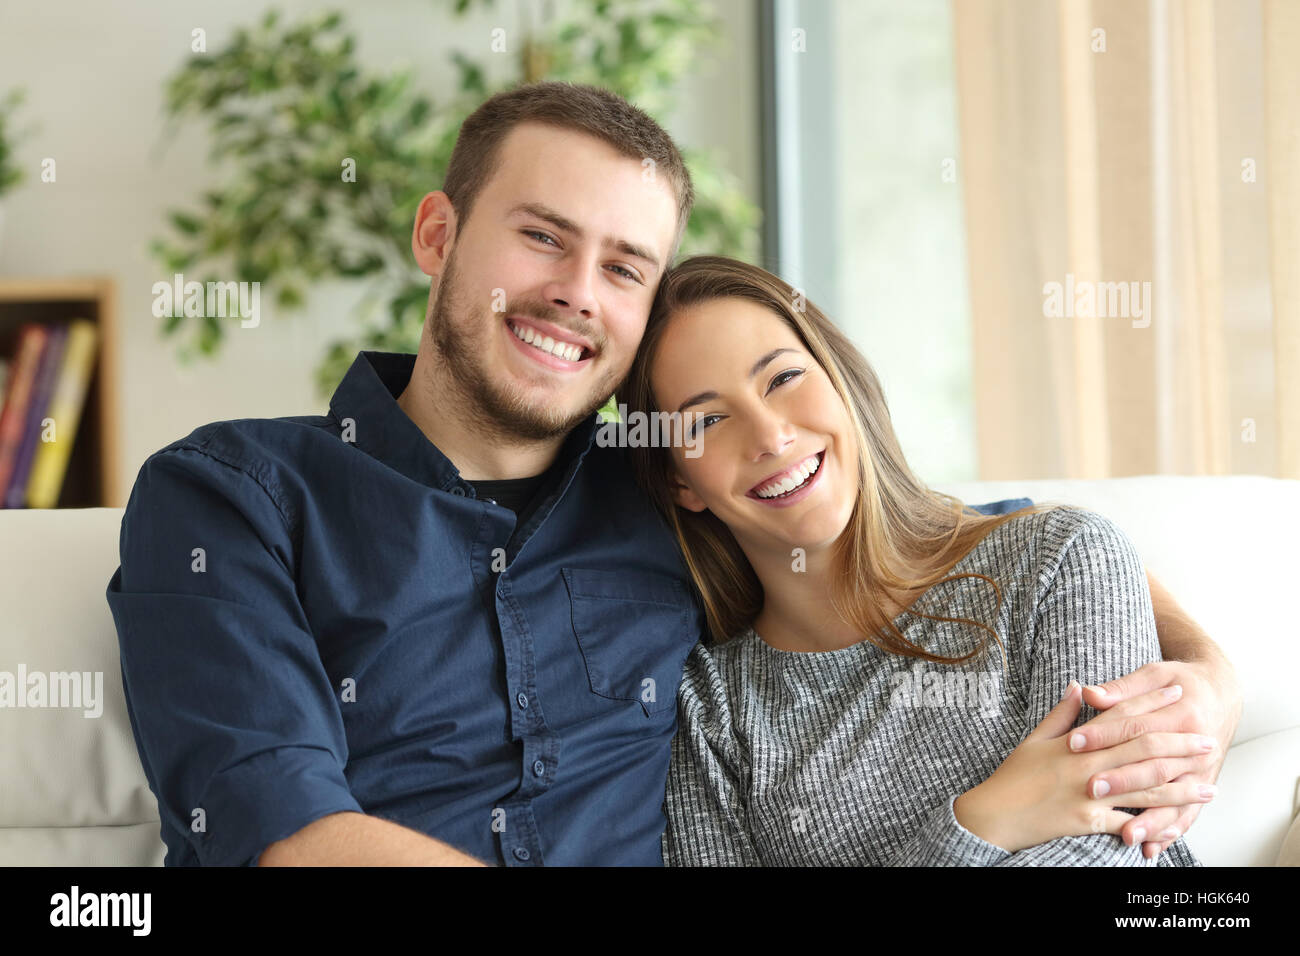 Front view portrait of a happy couple posing and looking at camera sitting on a couch in the living room at home - Stock Image